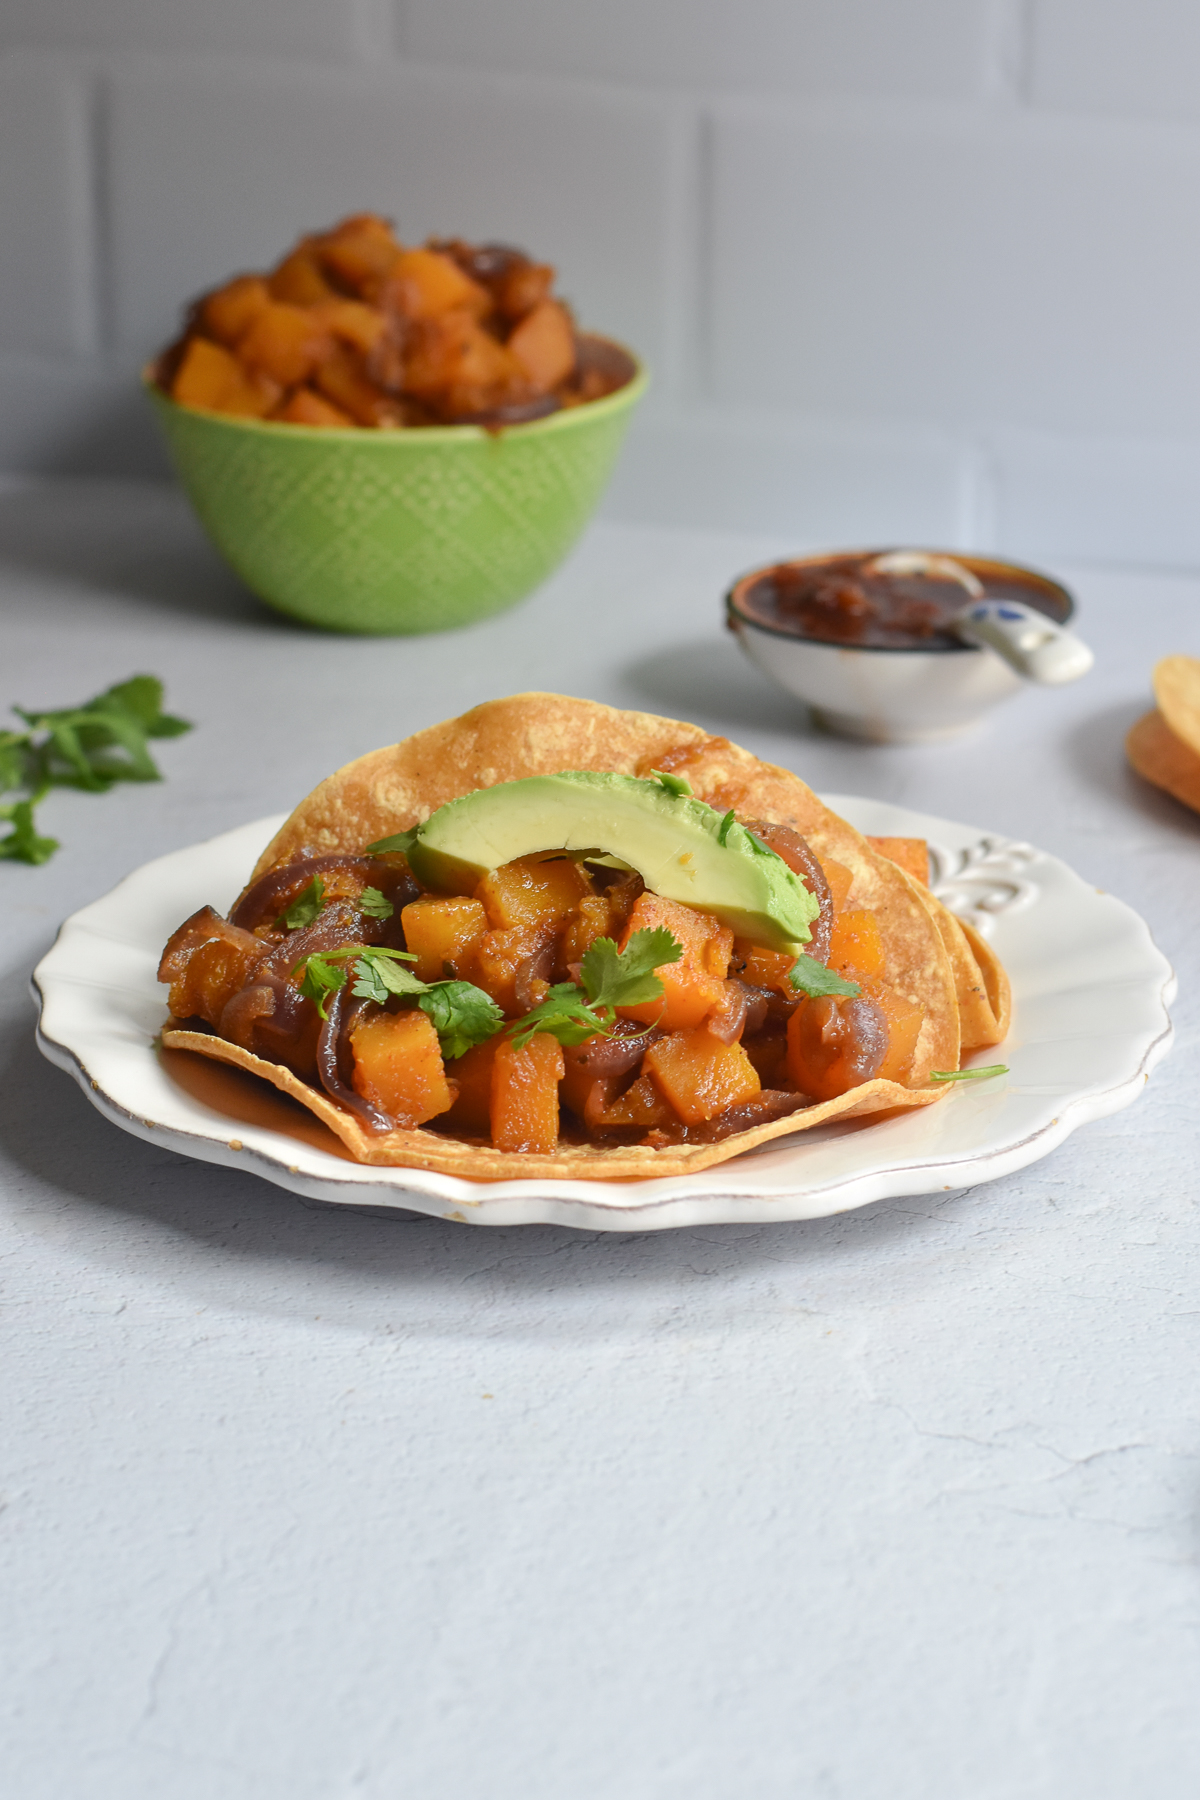 Braised Butternut Squash Tacos are a hearty, filling plant-based taco that is perfect for taco night. #vegan #taco #VeganMexican #dinner #recipe #glutenfree